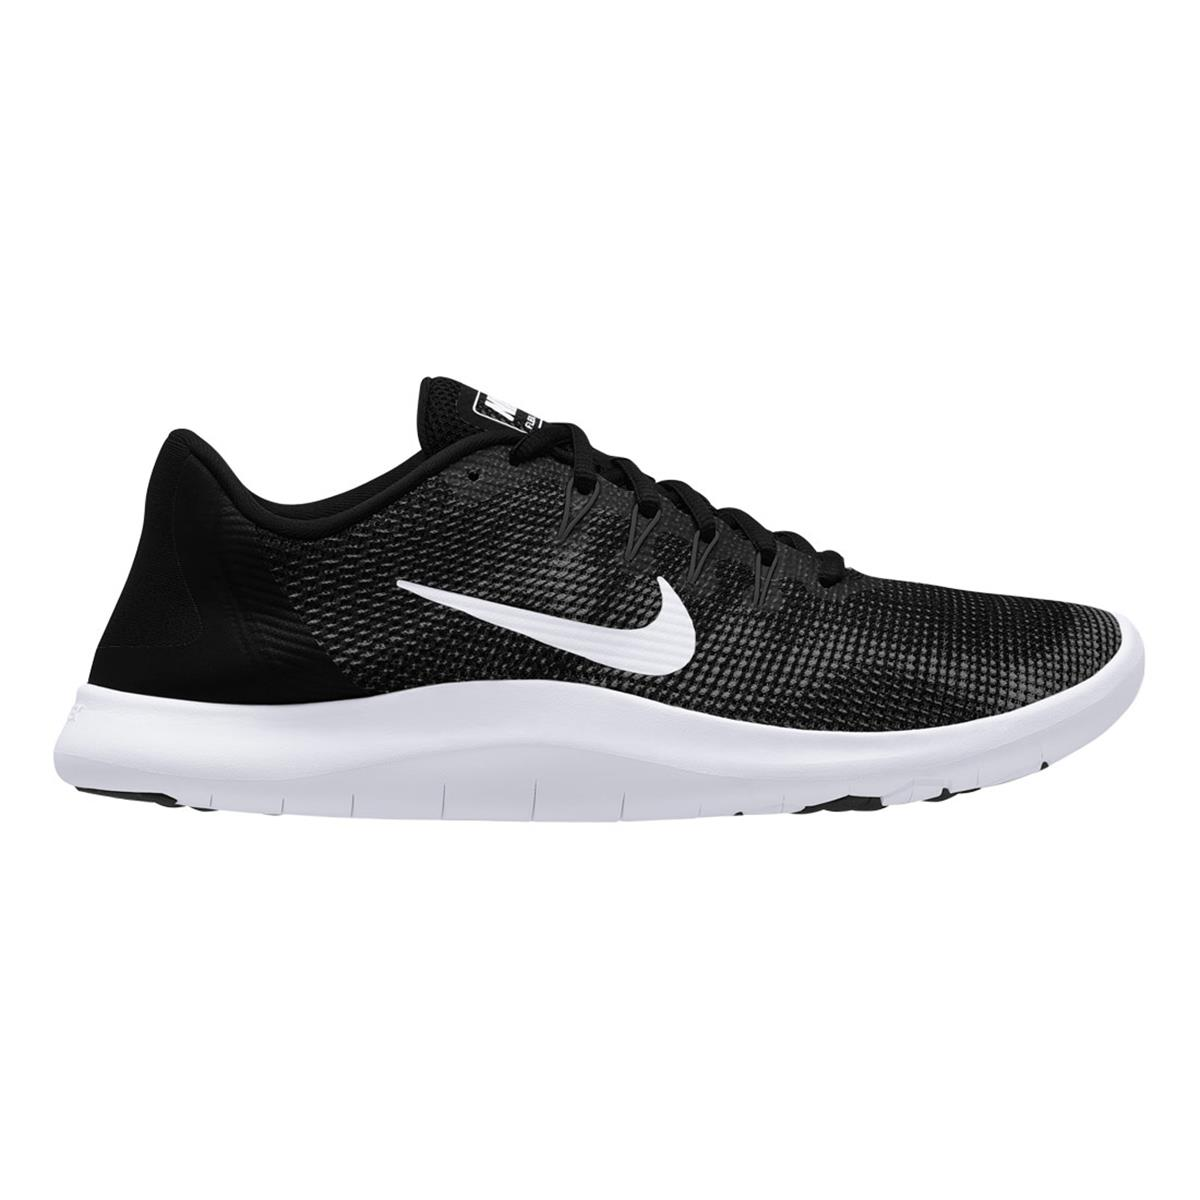 Nike Flex RN 2018 Mens Running Shoes